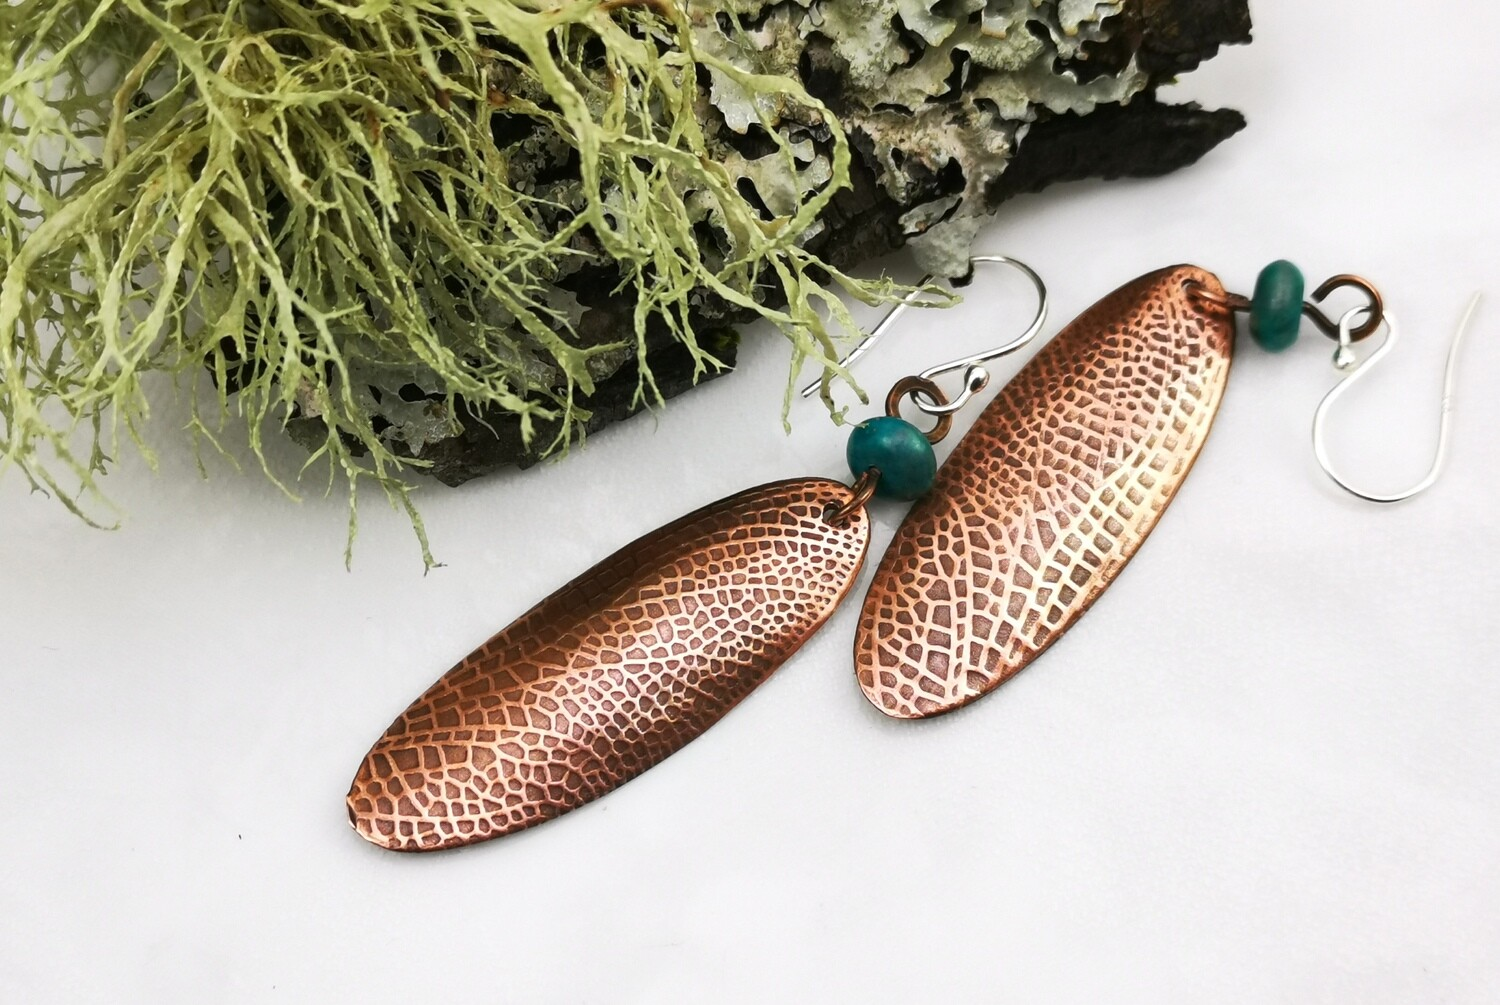 Skinny Oval Fairy / Dragonfly Wing Textured Copper Earrings with a blue green bead